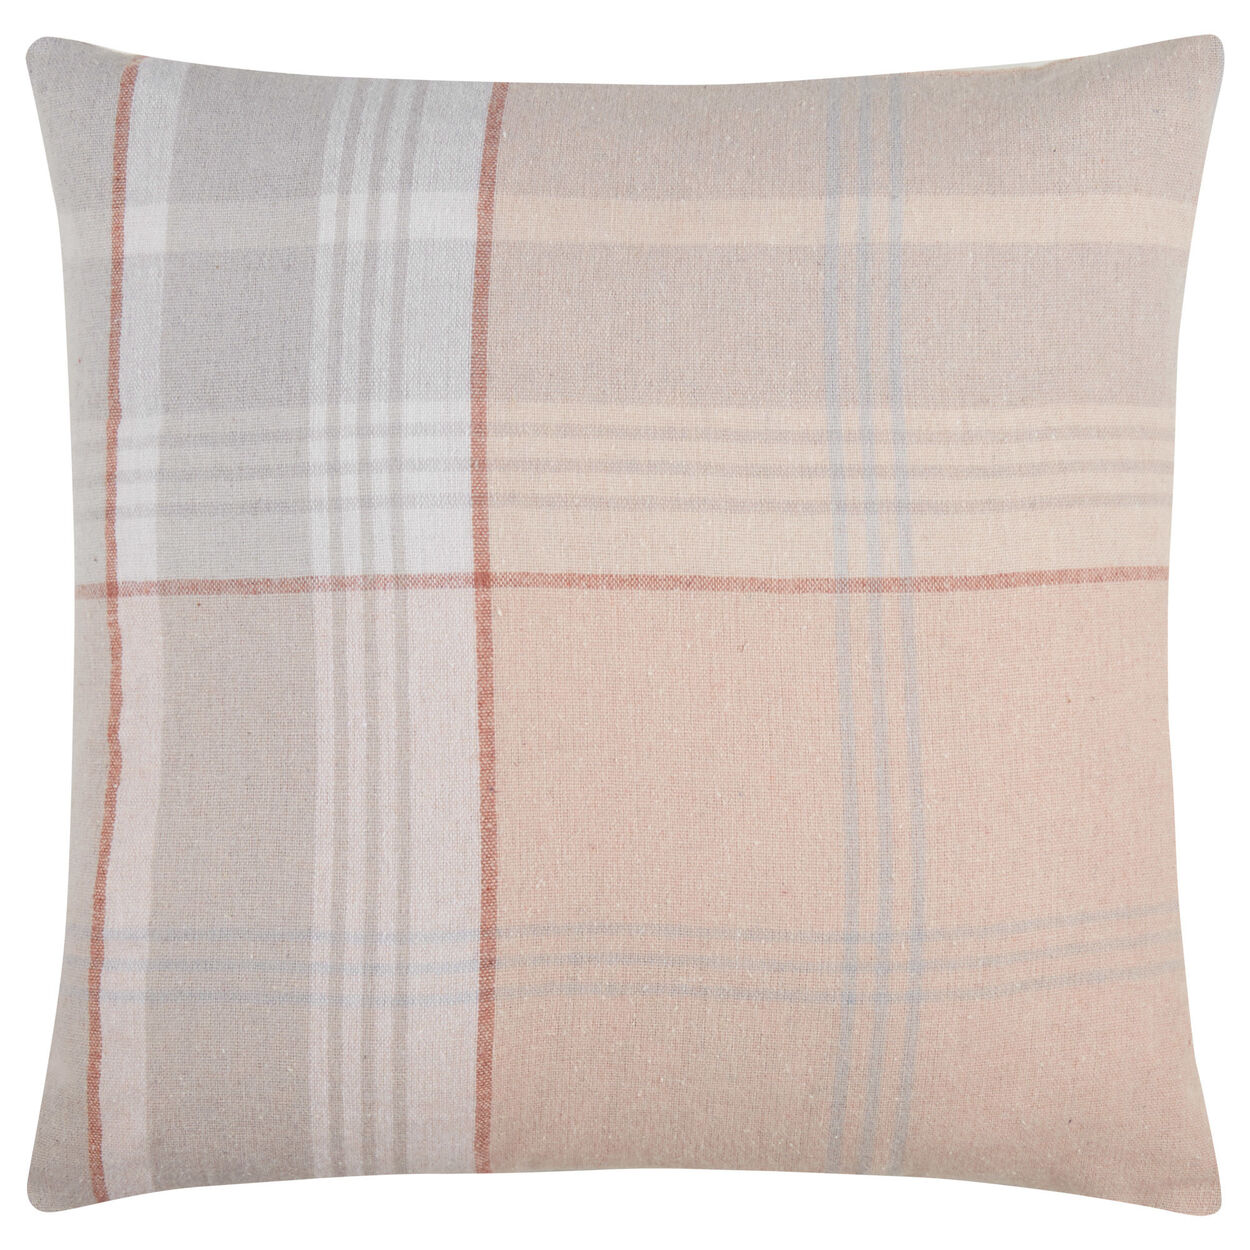 "Darryl Plaid Fleece Decorative Pillow 18"" X 18"""